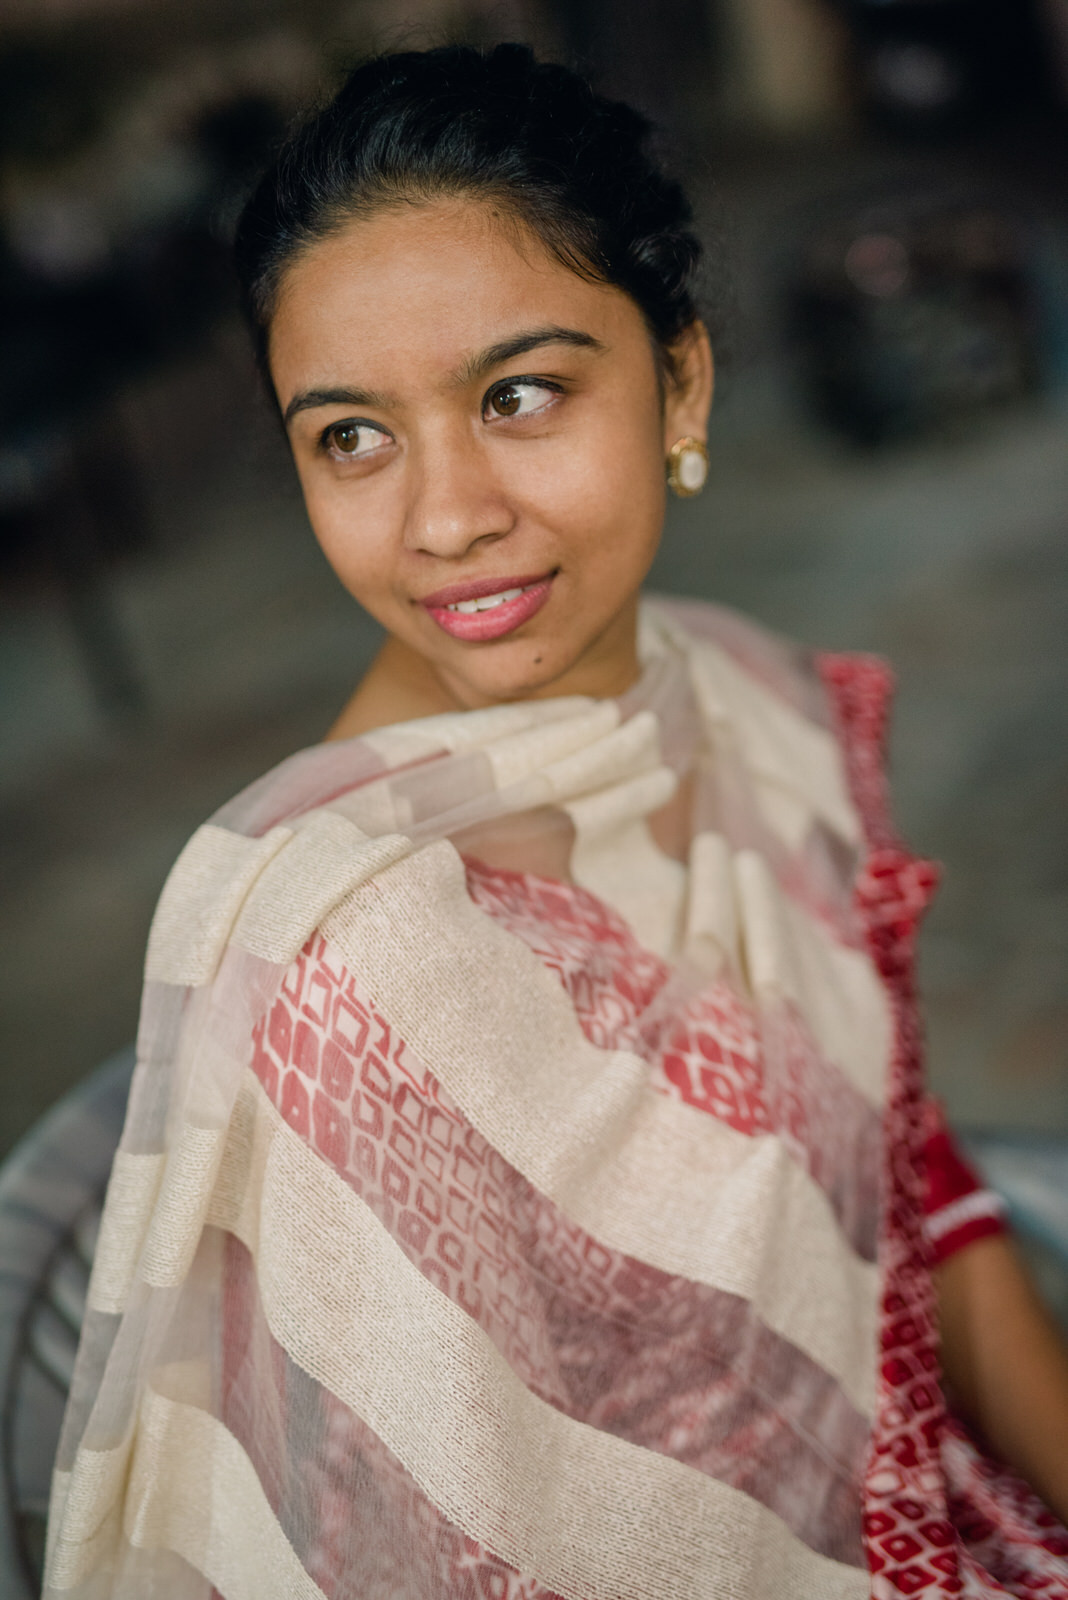 Asian Female Portrait Punjab.jpg